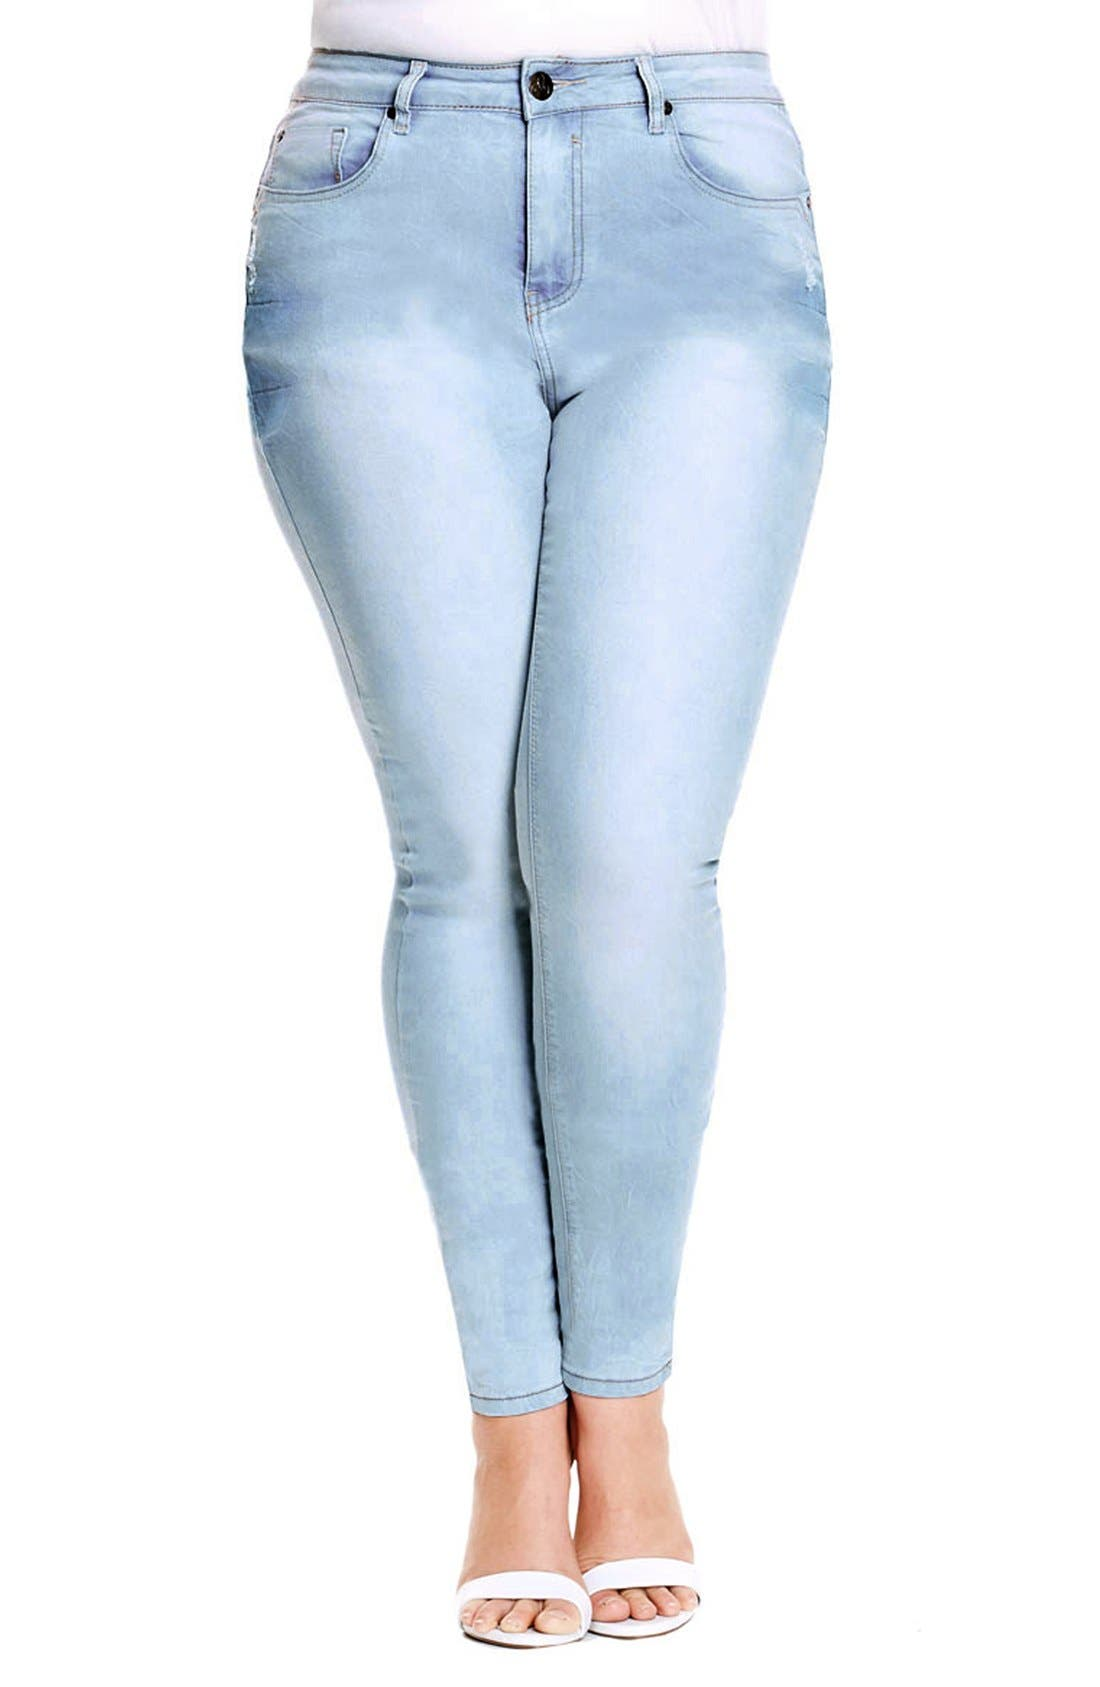 Alternate Image 1 Selected - City Chic 'Blue Baby' Stretch Skinny Jeans (Light Denim) (Plus Size)